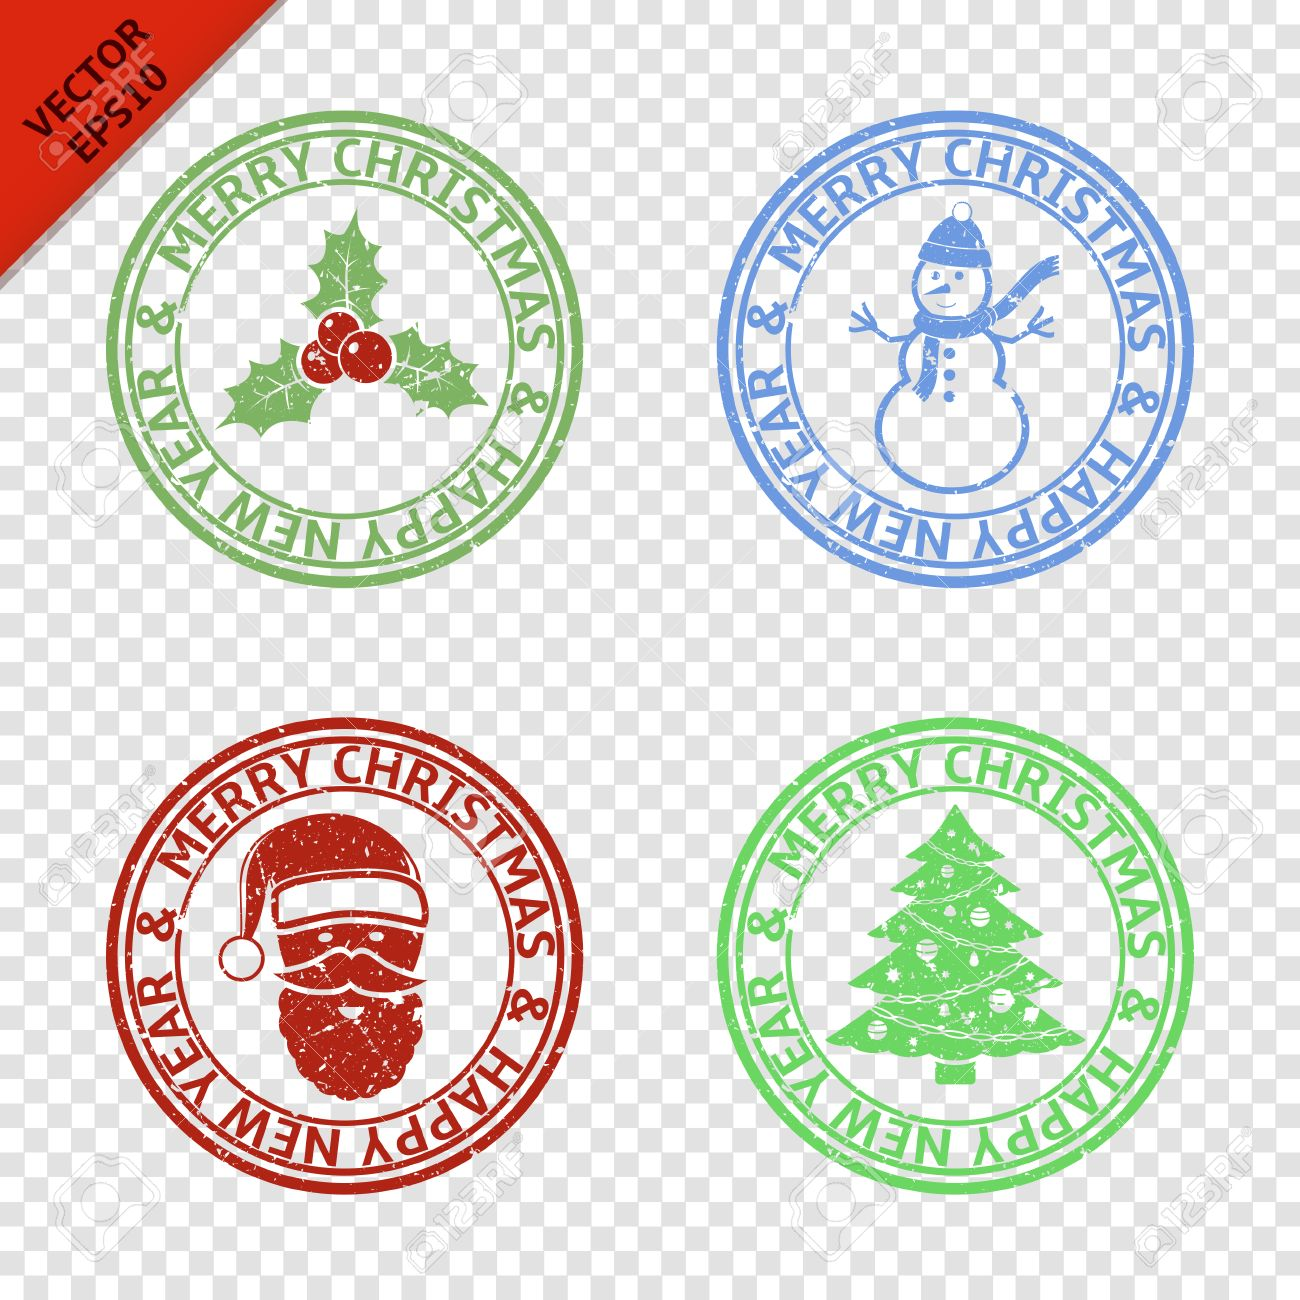 Christmas Stamps.Merry Christmas Stamps With Art Christmas Elements Isolated On